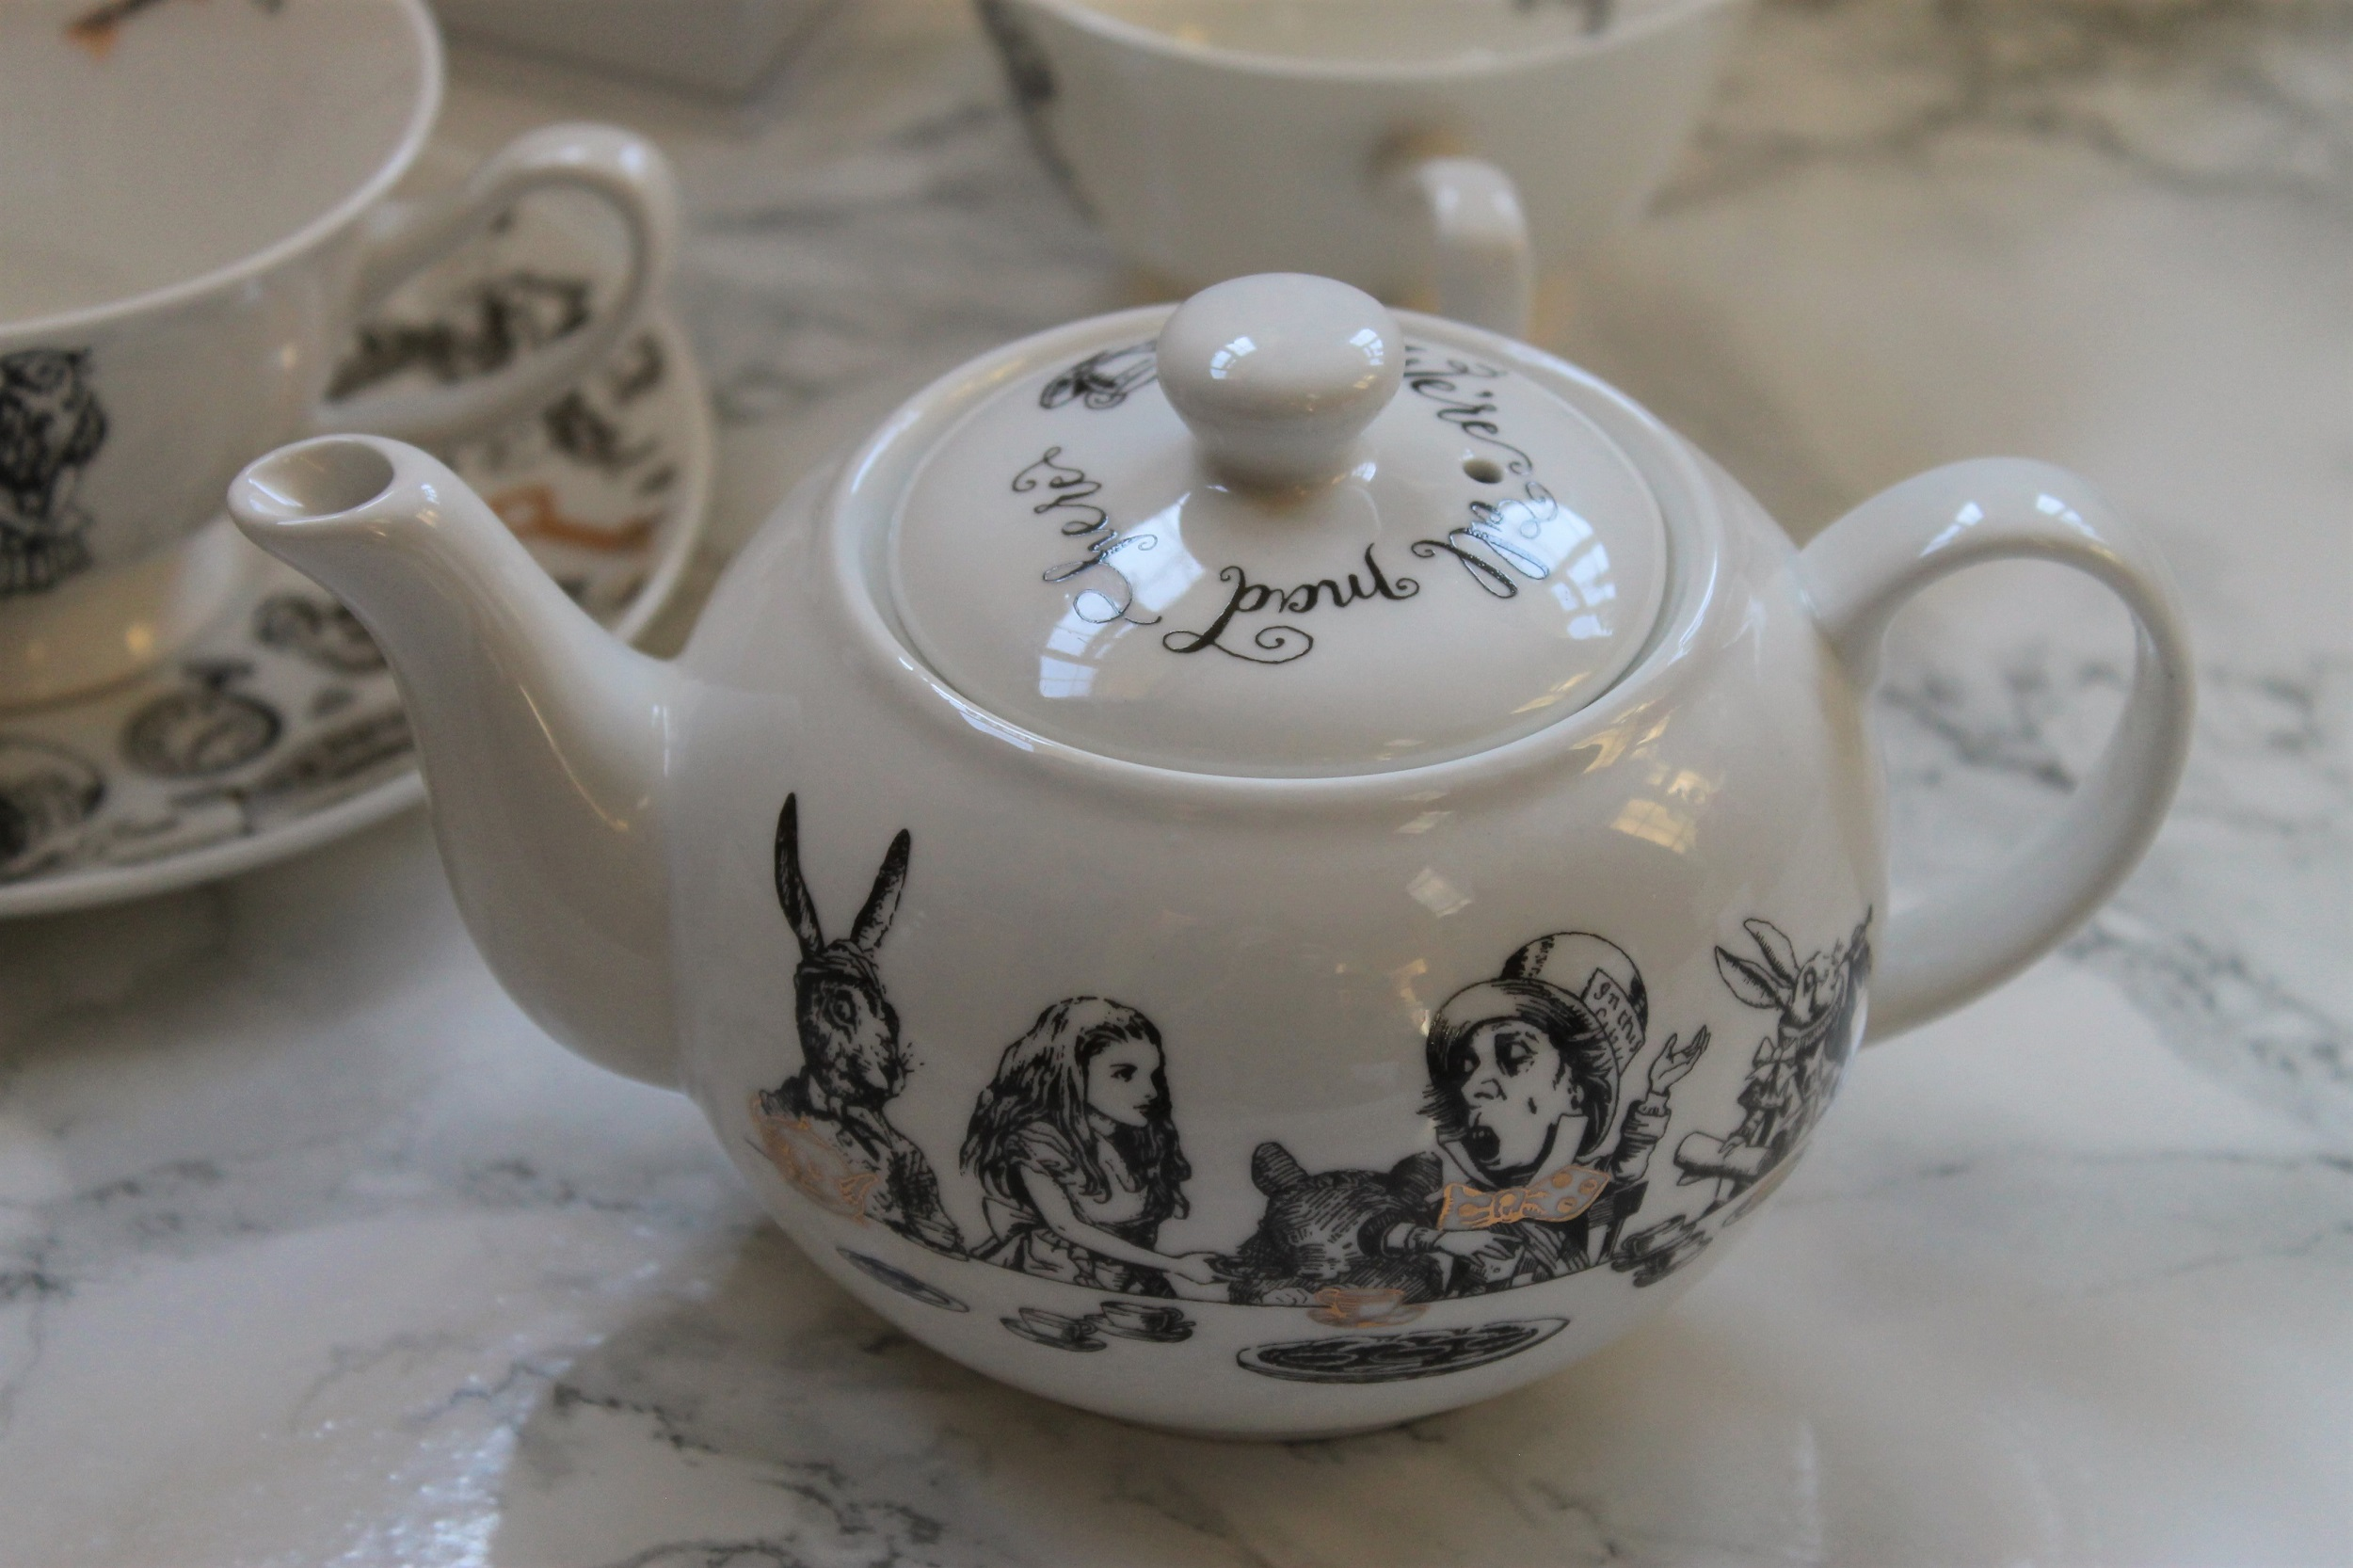 v and a mini teapot